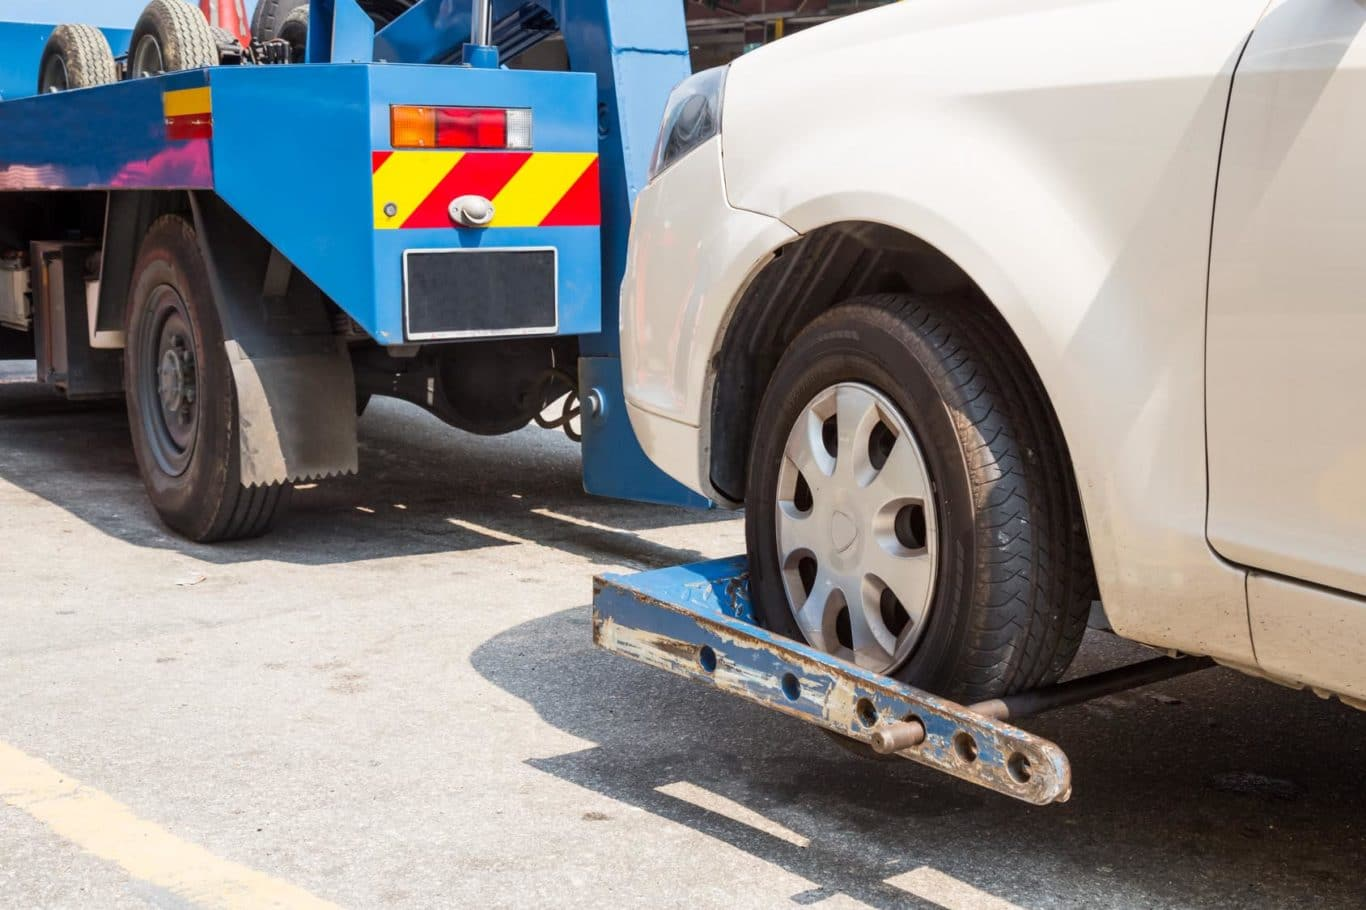 Boyerstown expert Car Towing services